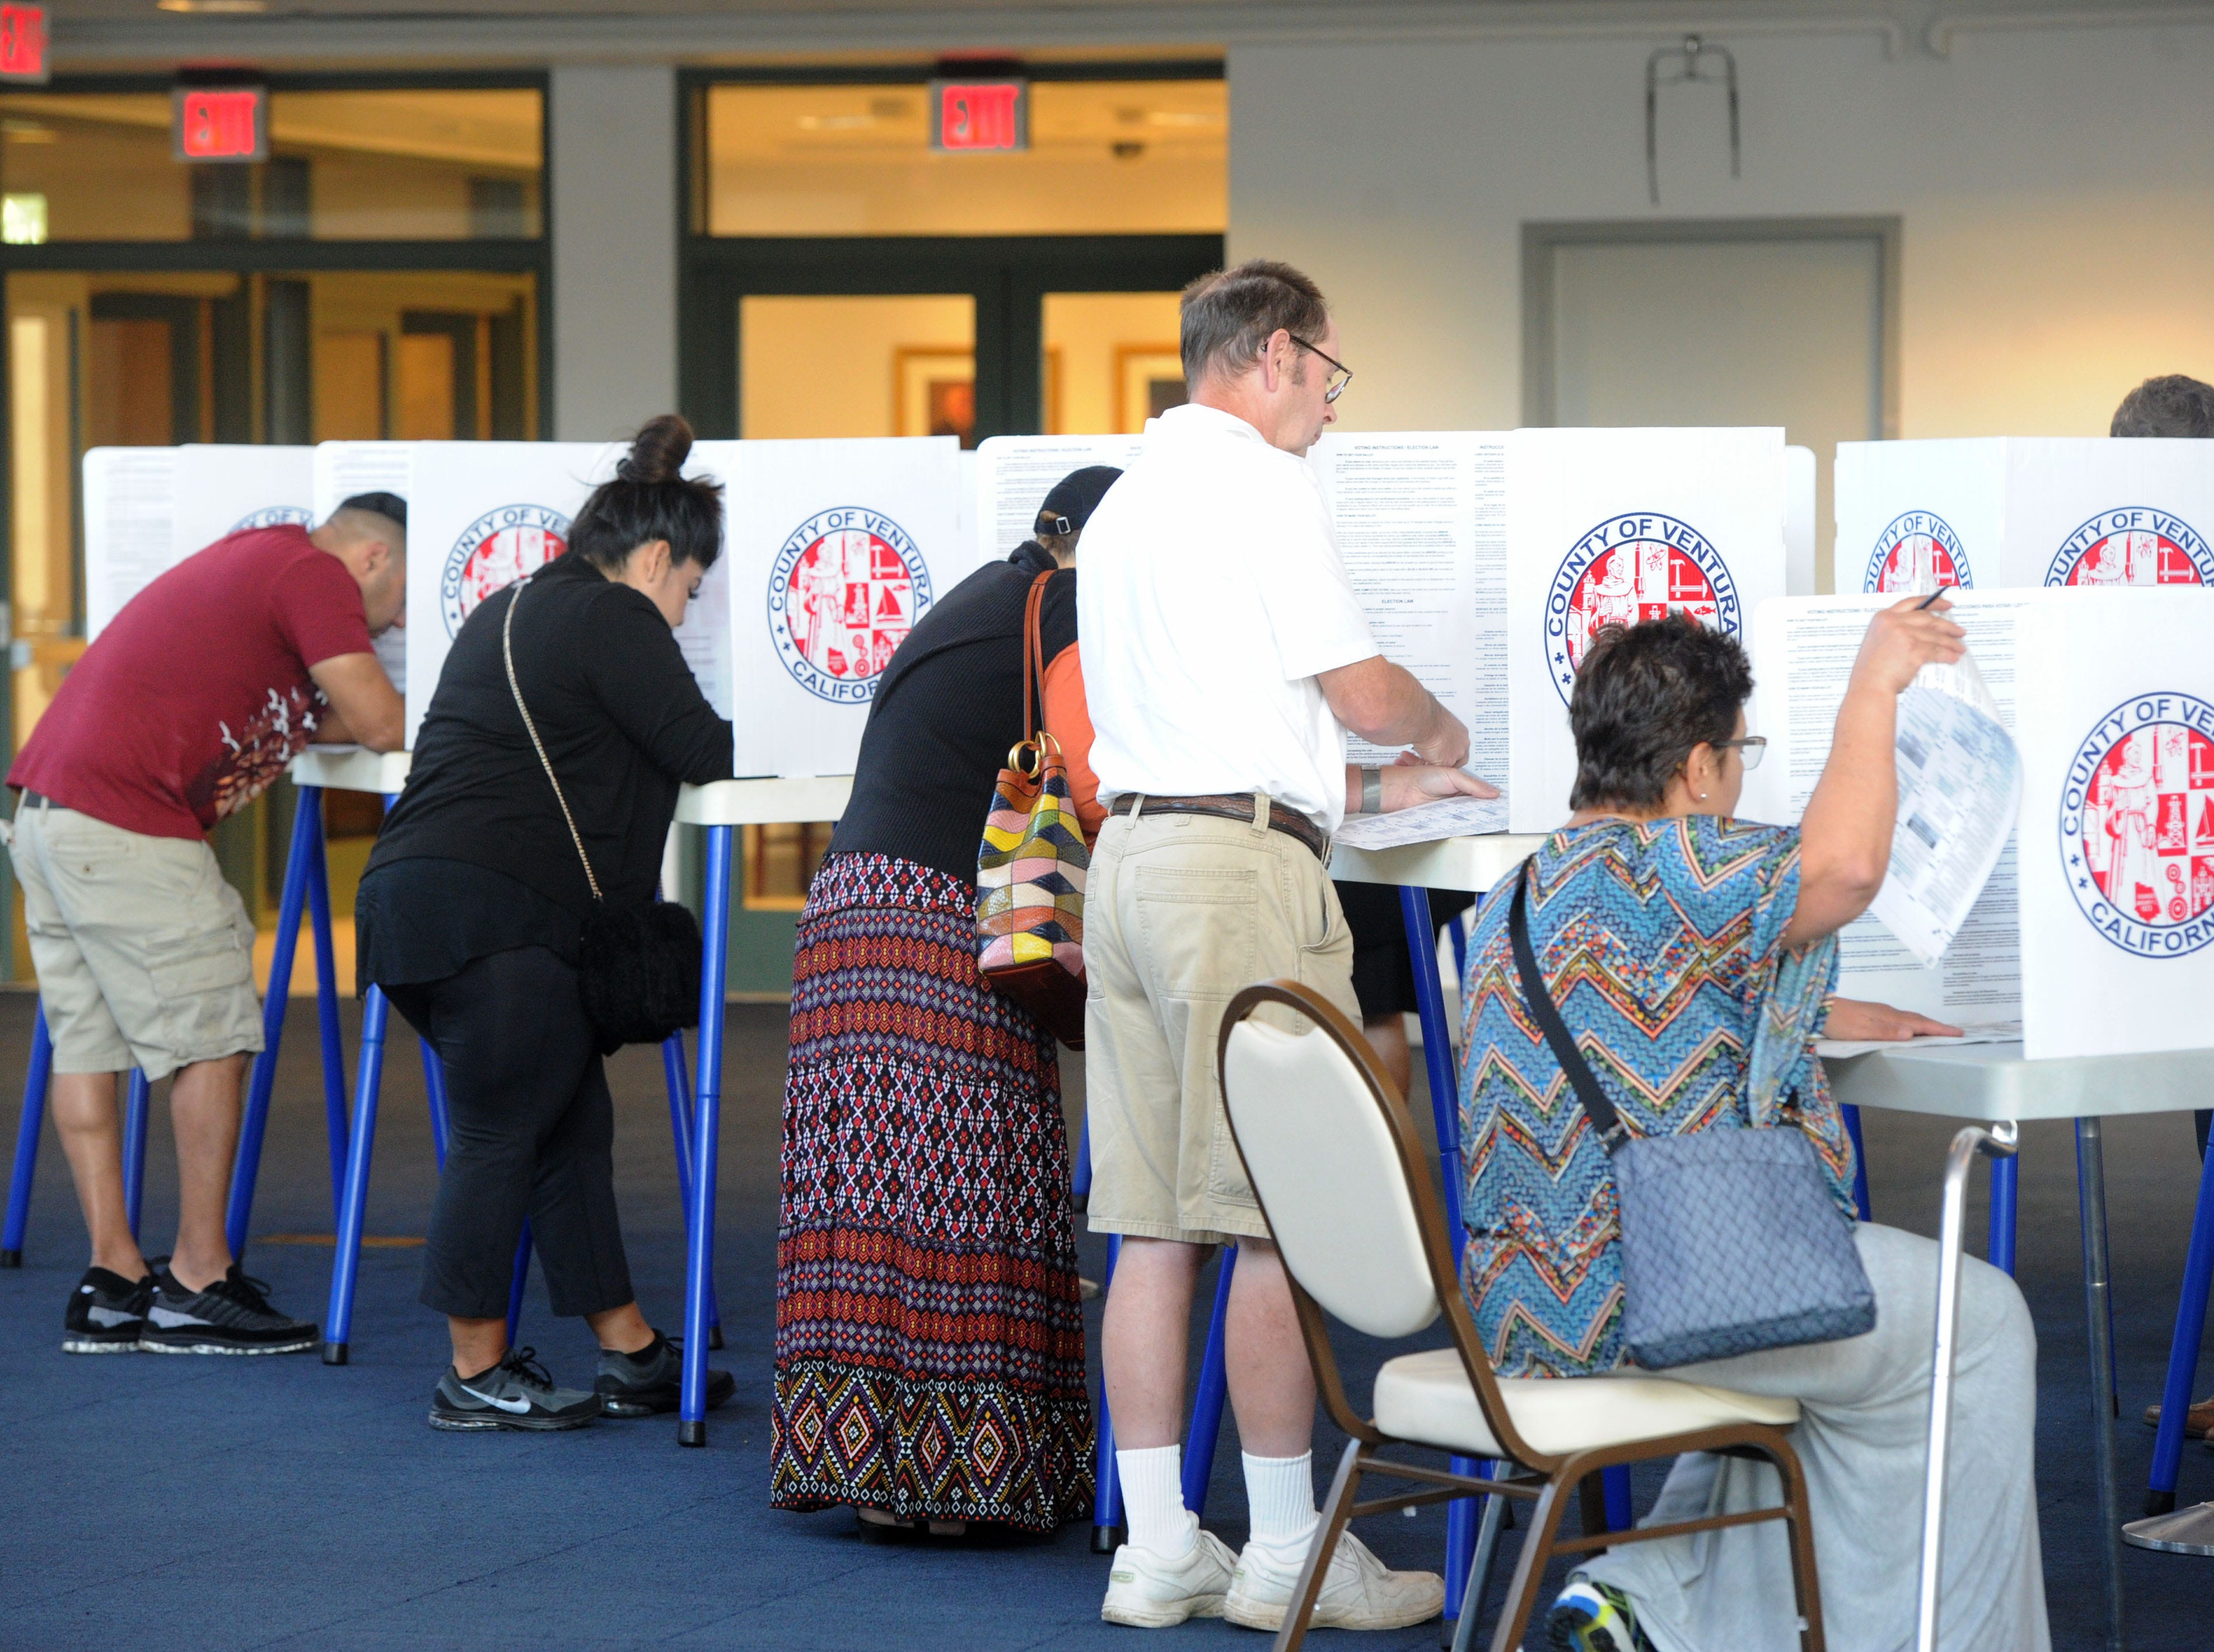 People cast their votes Tuesday at the Ronald Reagan Presidential Library & Museum in Simi Valley.